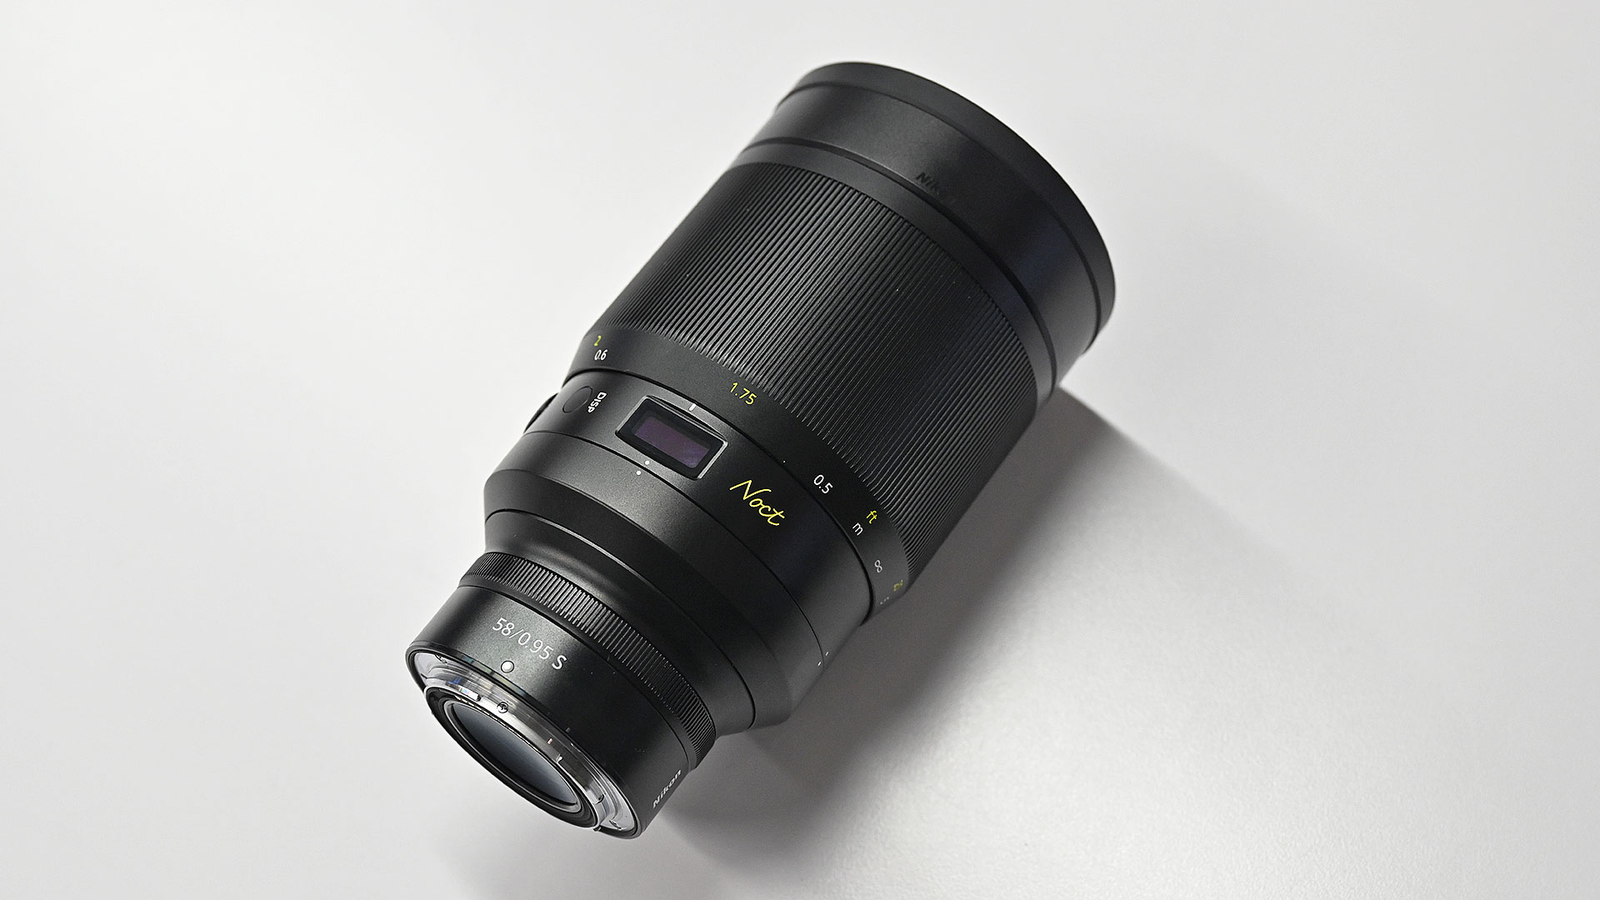 If you think $8,000 is too much to spend on a lens, then the Noct is probably not for you.